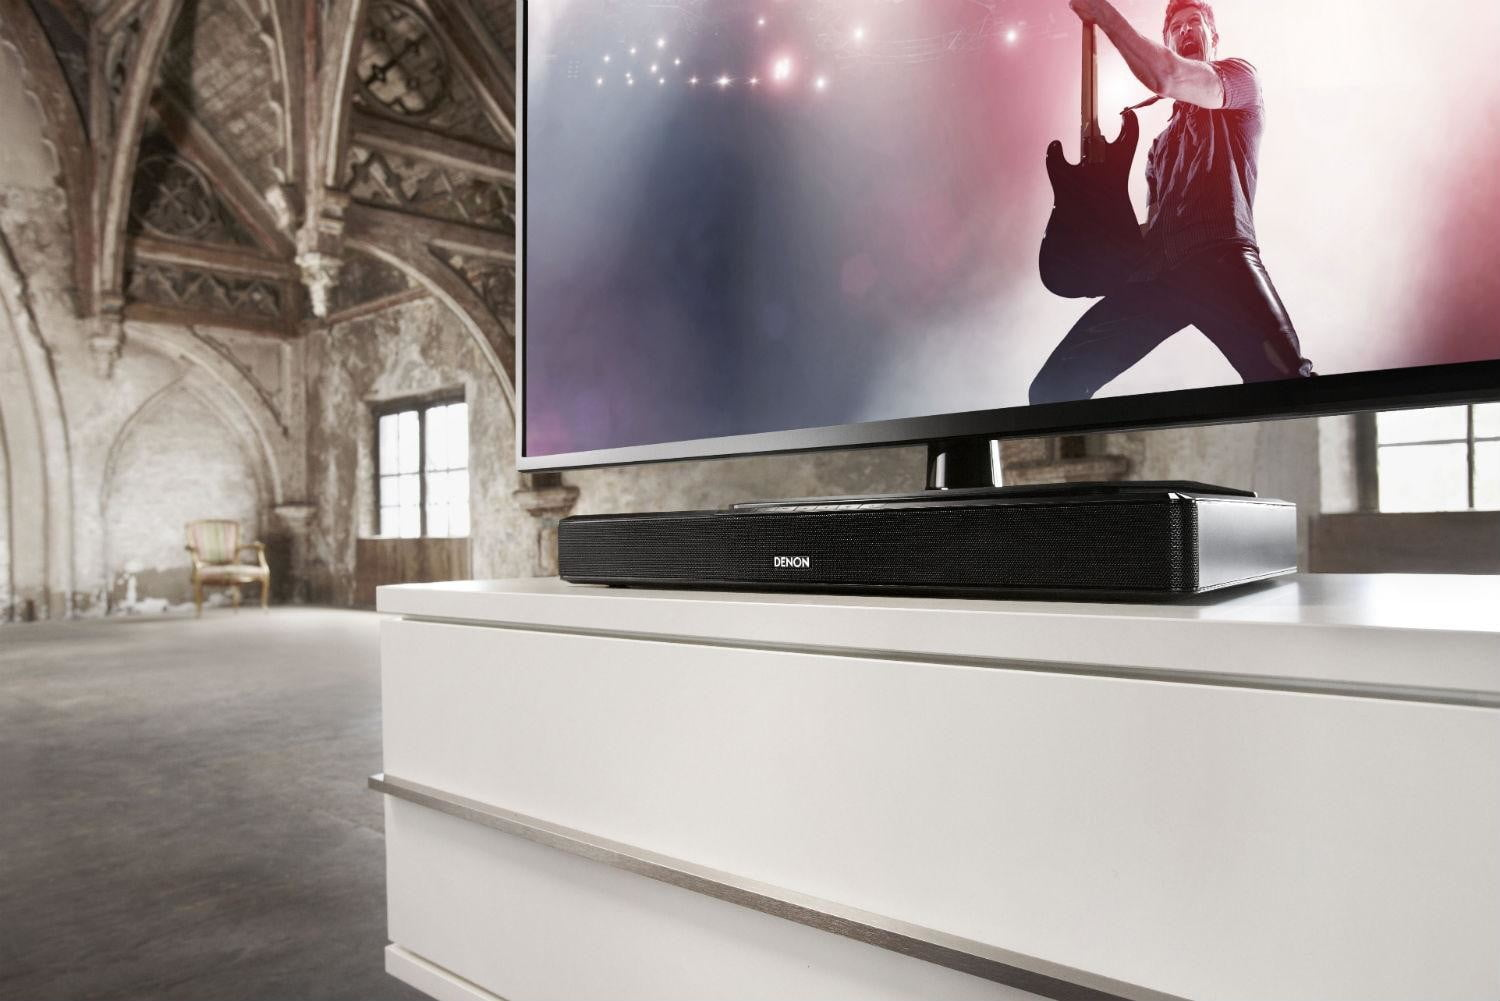 Denon DHT T110 stand side